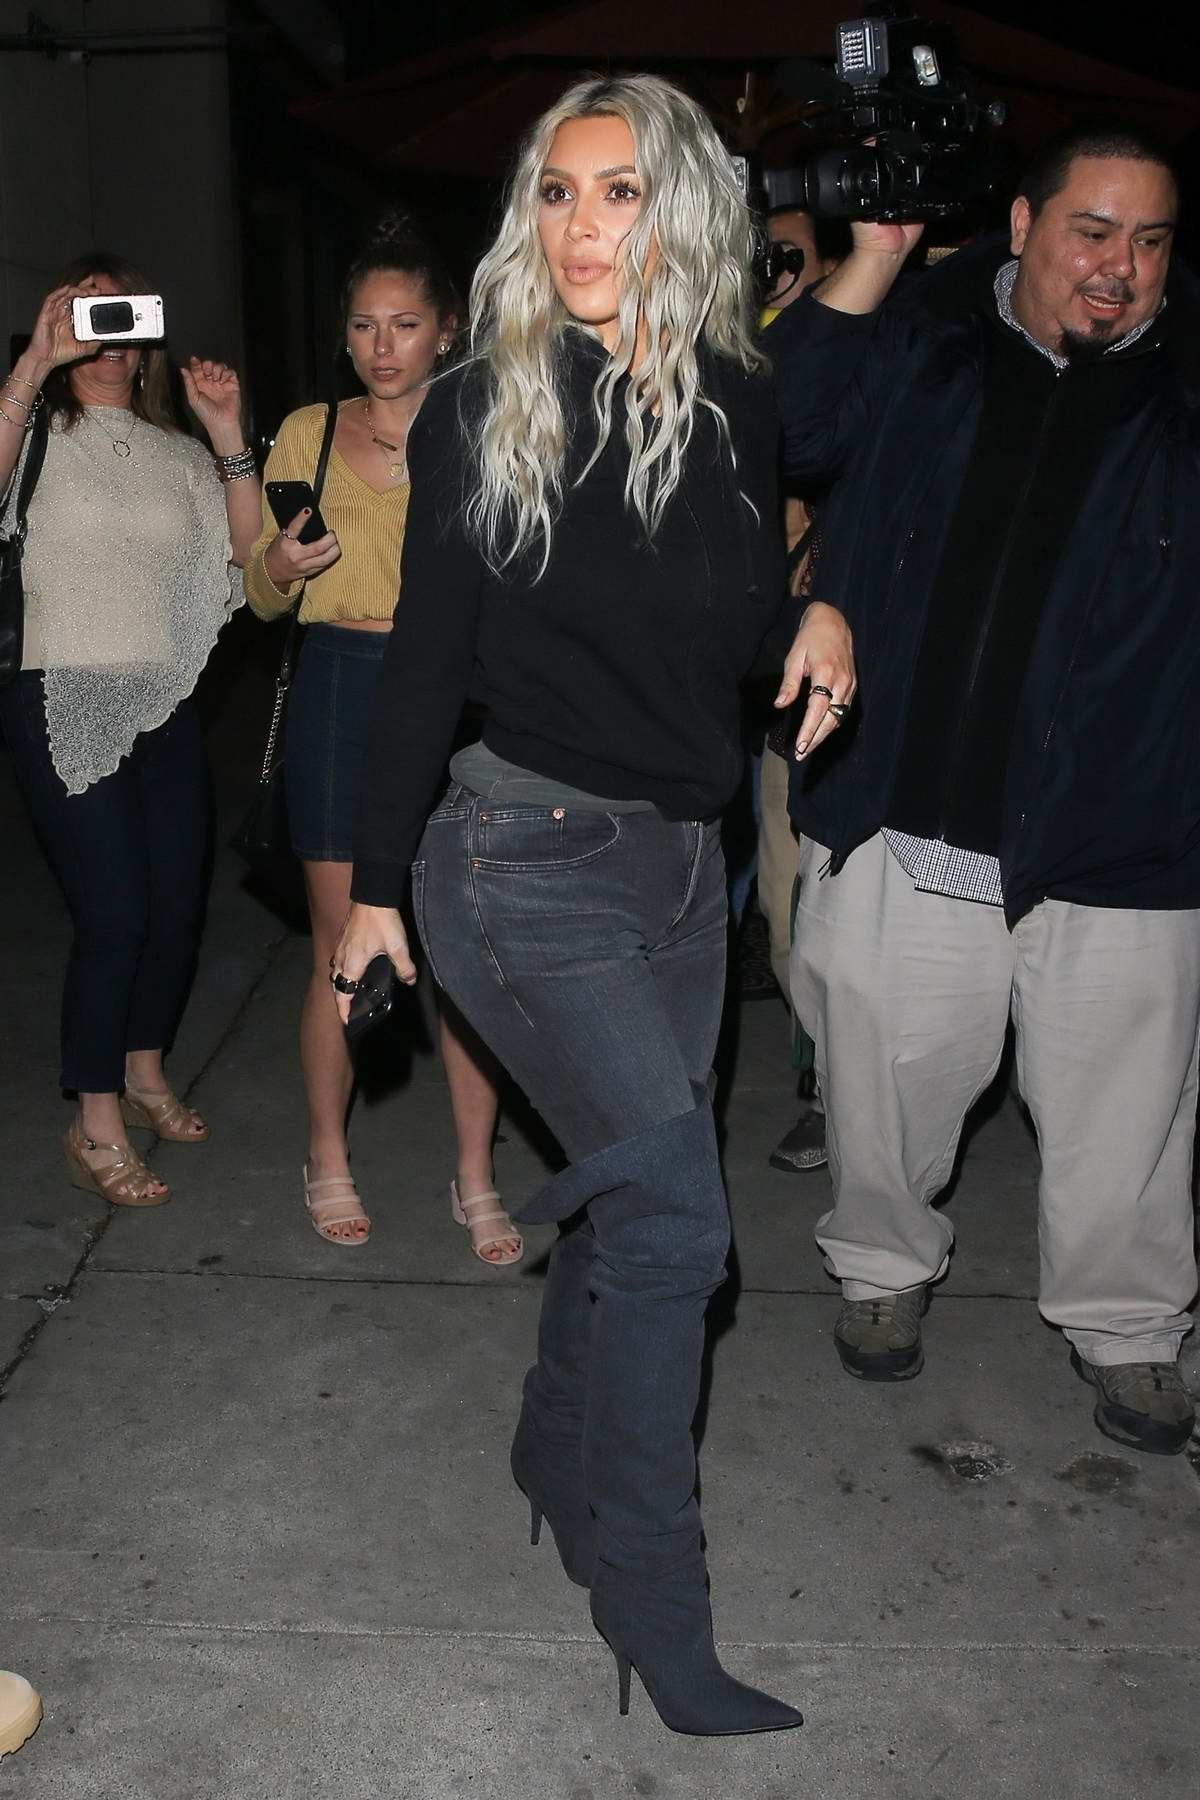 Kim Kardashian and Kanye West heads out after dinner at Craig's in West Hollywood, Los Angeles